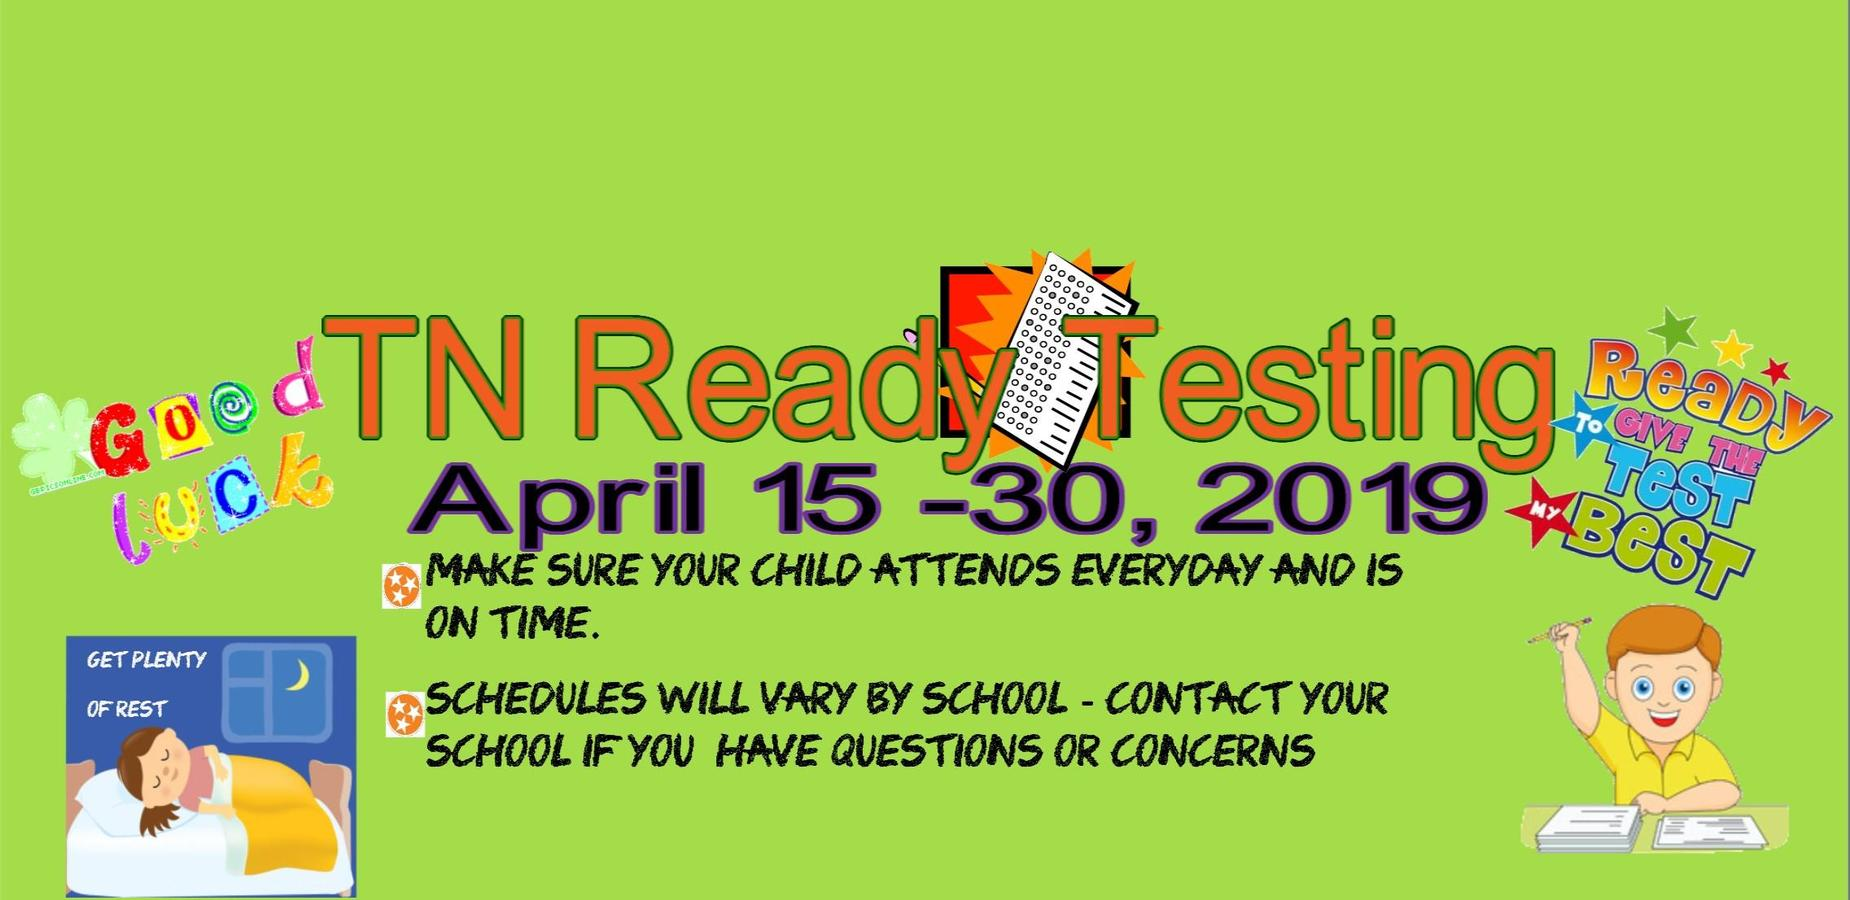 State Testing from April 15 - 30th